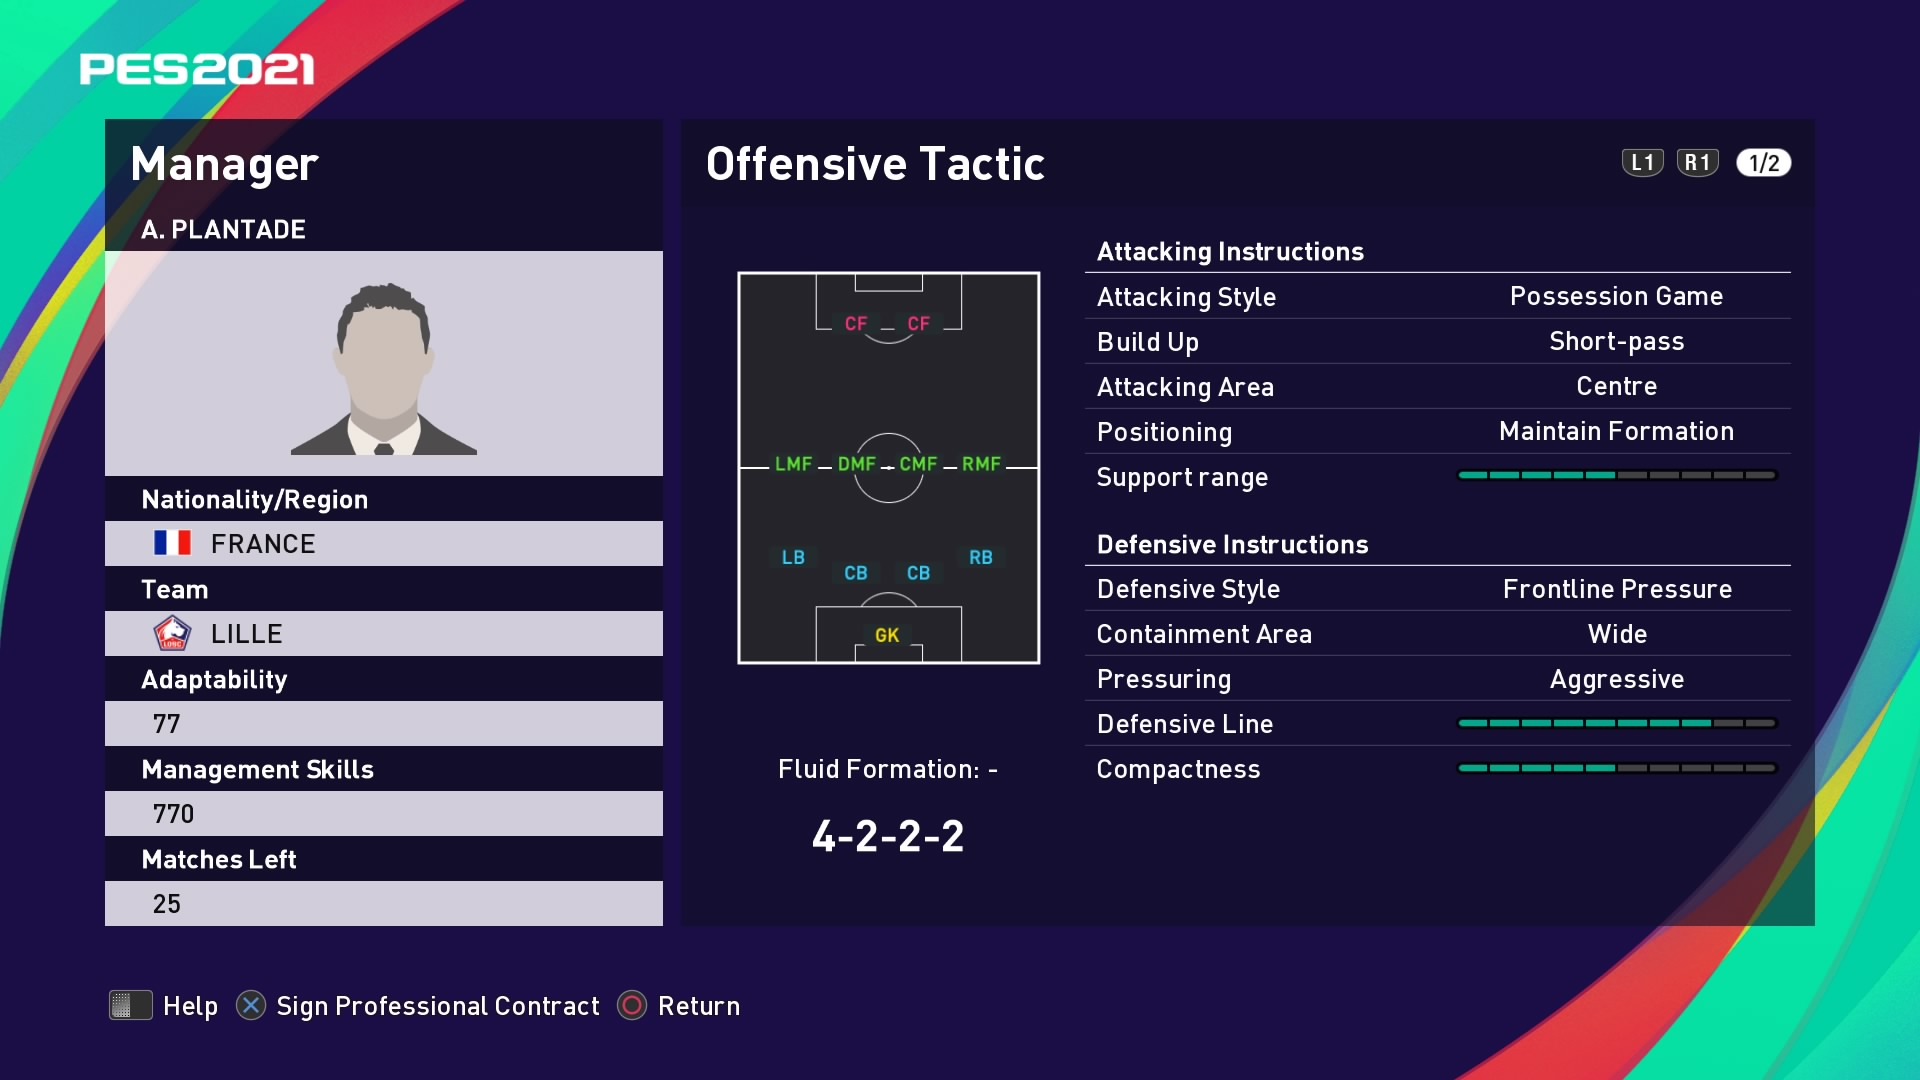 A. Plantade (Christophe Galtier) Offensive Tactic in PES 2021 myClub